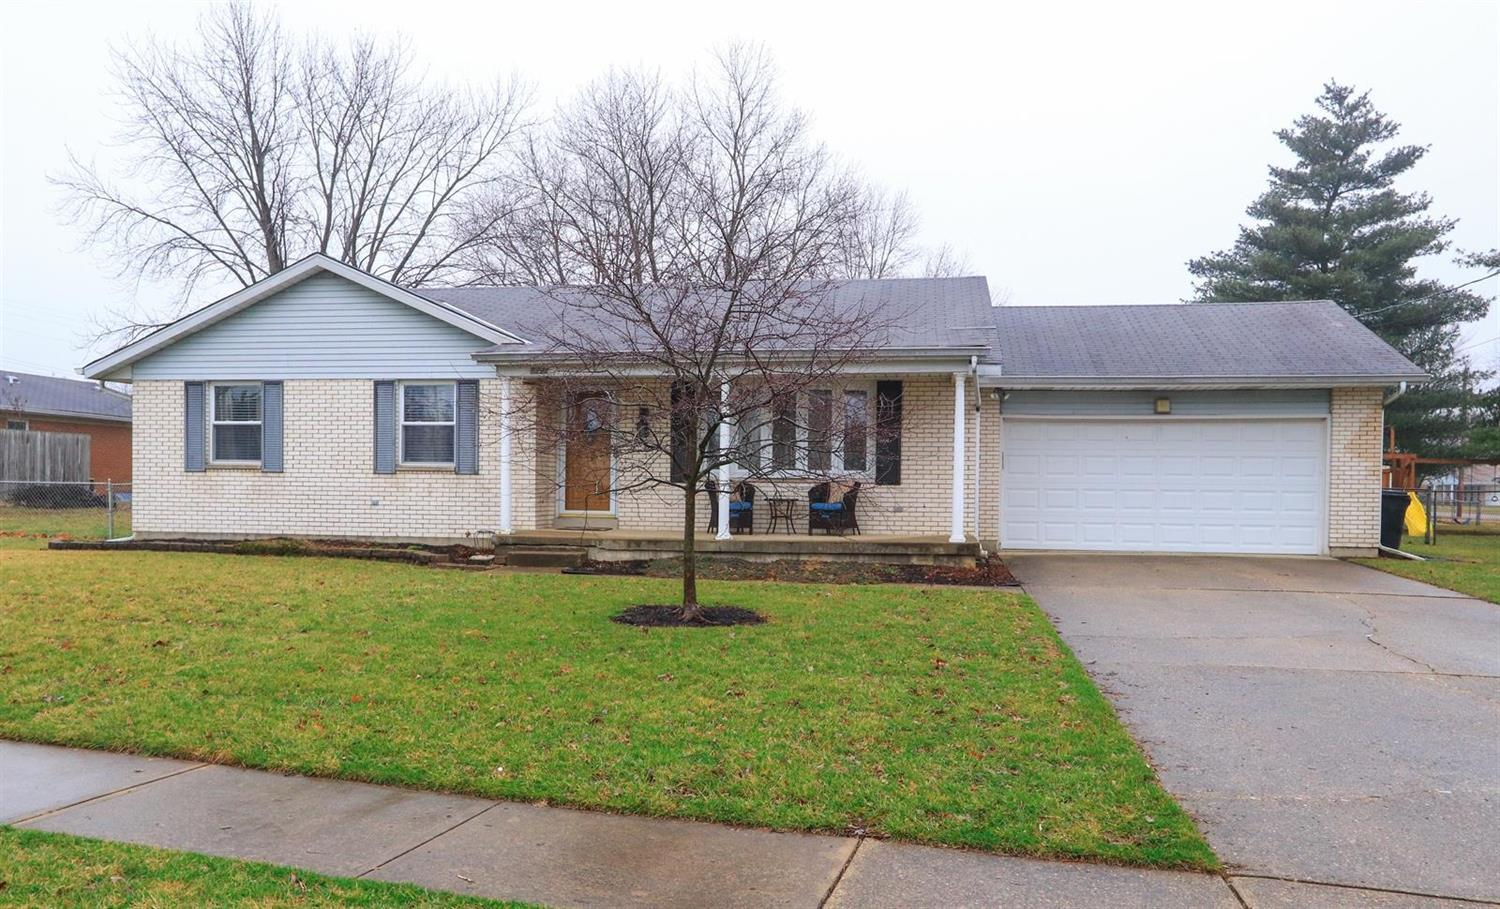 Property for sale at 5222 Chateau Way, Fairfield,  OH 45014